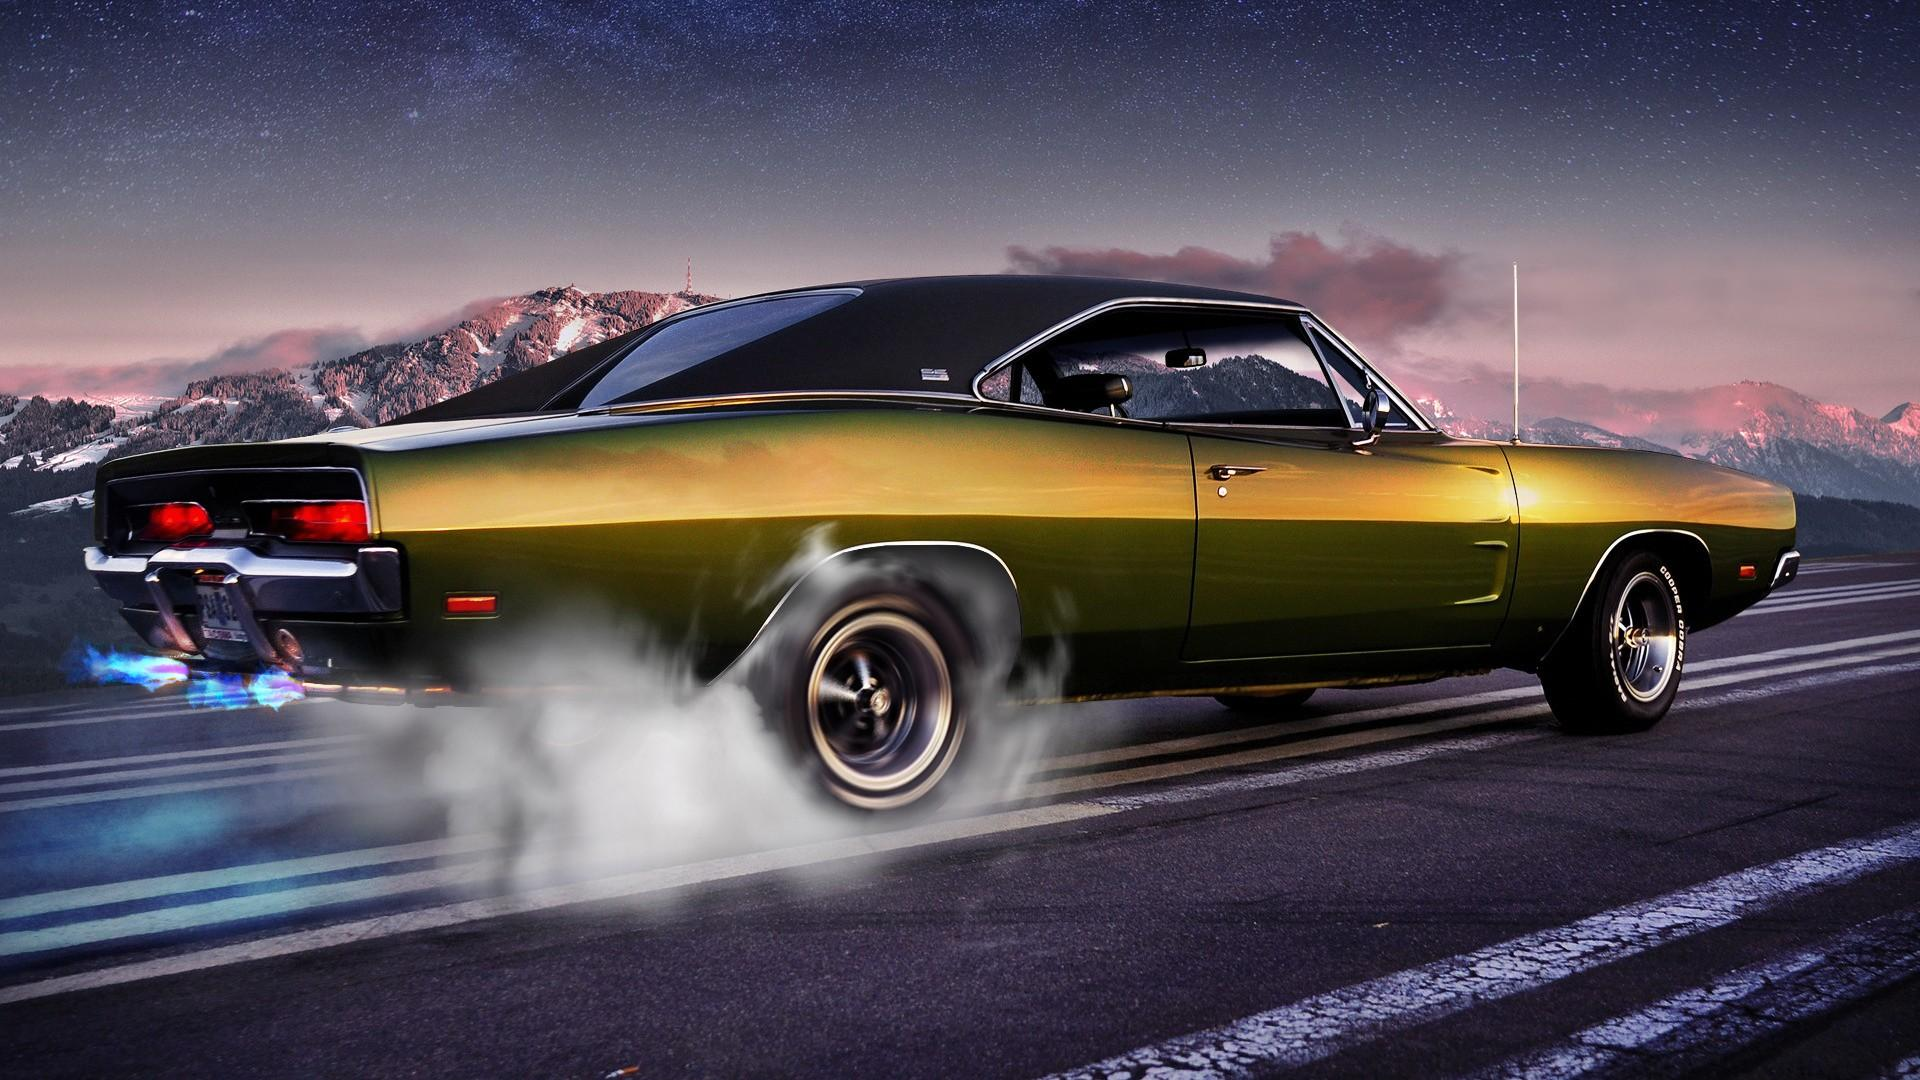 Classic Muscle Car Wallpaper   iBackgroundWallpaper 1920x1080